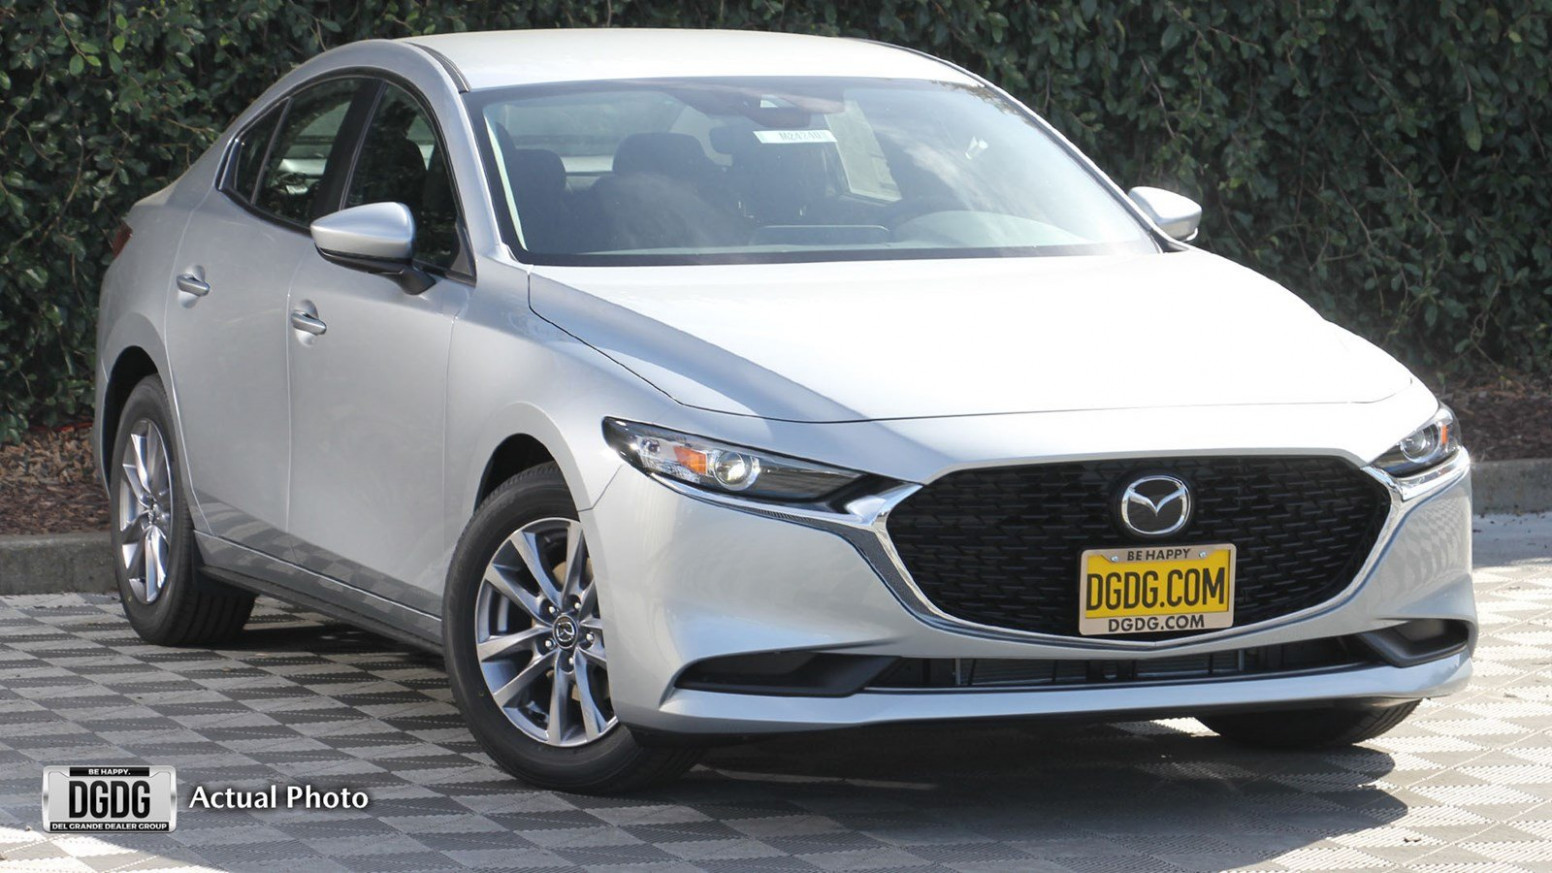 No Brainer Deals | New & Pre-Owned Vehicle Specials - mazda end of financial year sale 2020